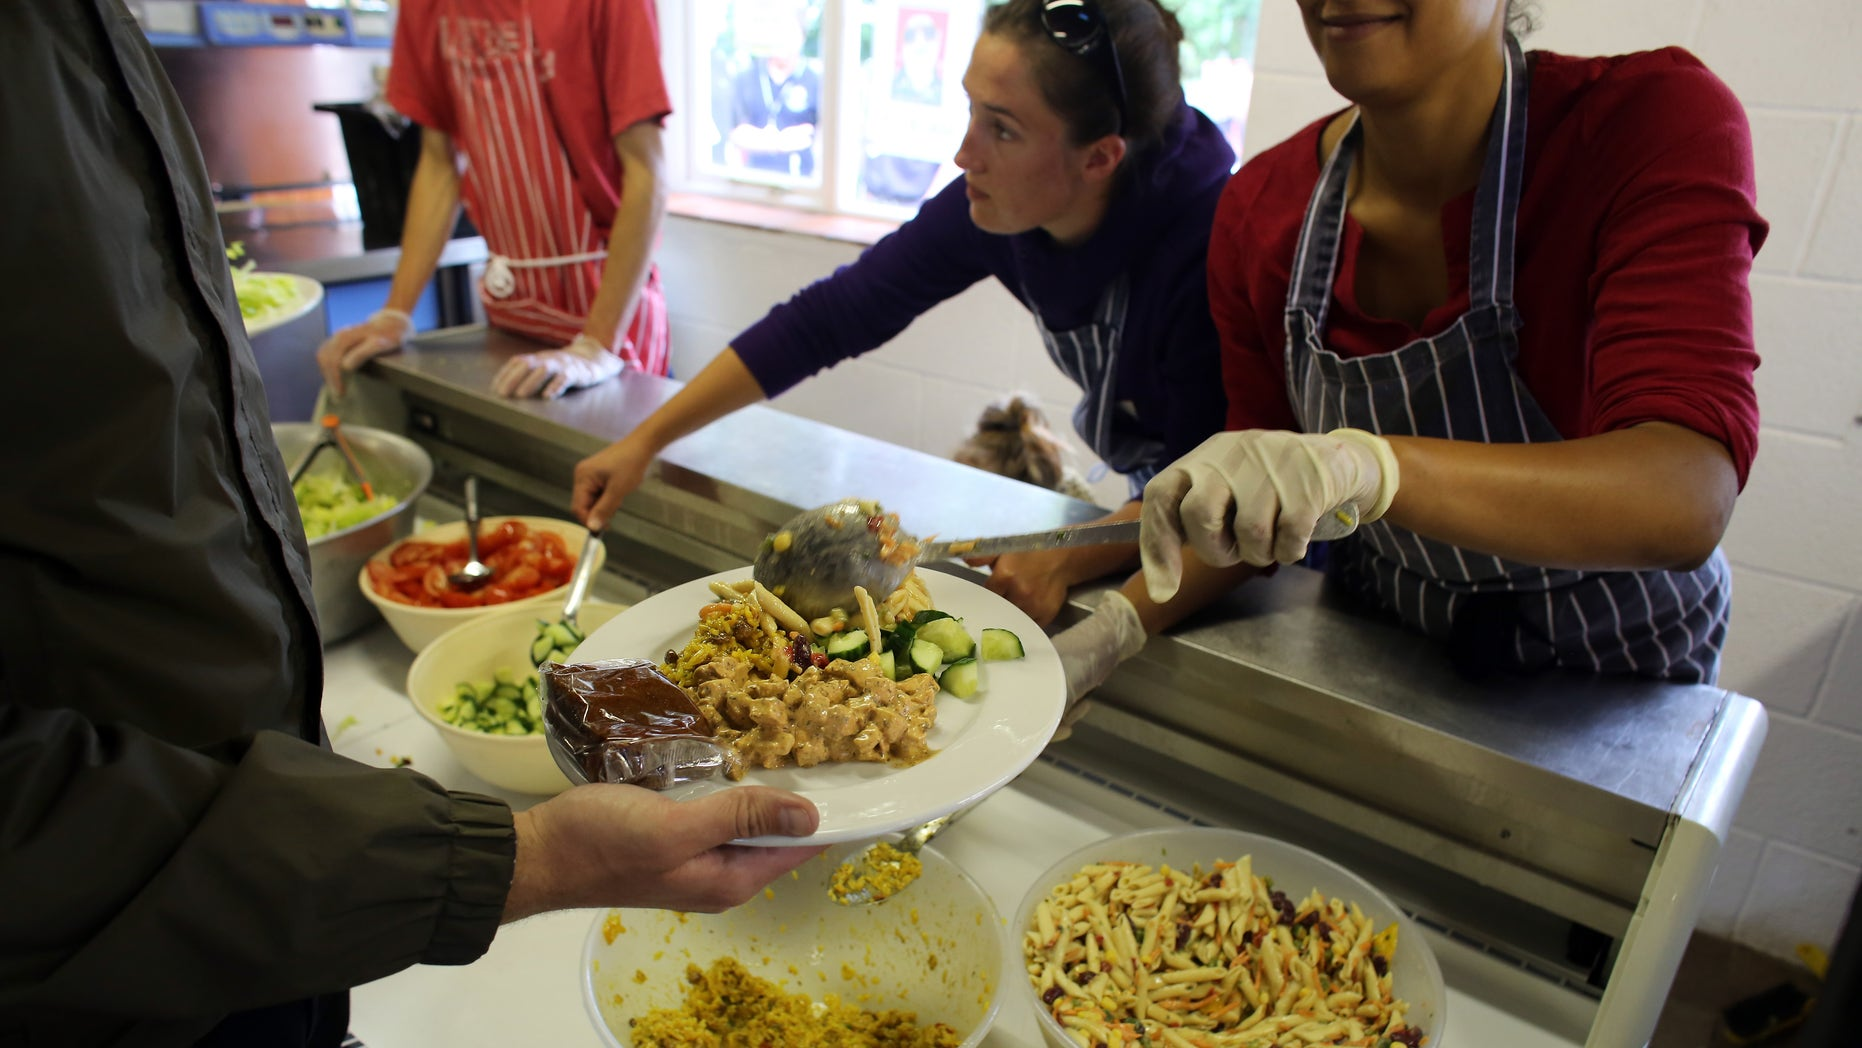 GLASTONBURY, ENGLAND - JUNE 20:  Festival caterers serve lunch at Goose Hall, the on-site staff canteen, at the Glastonbury Festival of Contemporary Performing Arts site at Worthy Farm, in Pilton on June 20, 2013 in Glastonbury, England.  In a weeks time, the diary farm in Somerset will be playing host to one of the largest music festivals in the world and this year features headline acts Artic Monkeys, Mumford and Sons and the Rolling Stones. Tickets to the event which is now in its 43rd year sold out in minutes and that was before any of the headline acts had been confirmed. The festival, which started in 1970 when several hundred hippies paid 1 GBP to watch Marc Bolan, now attracts more than 175,000 people over five days.  (Photo by Matt Cardy/Getty Images)